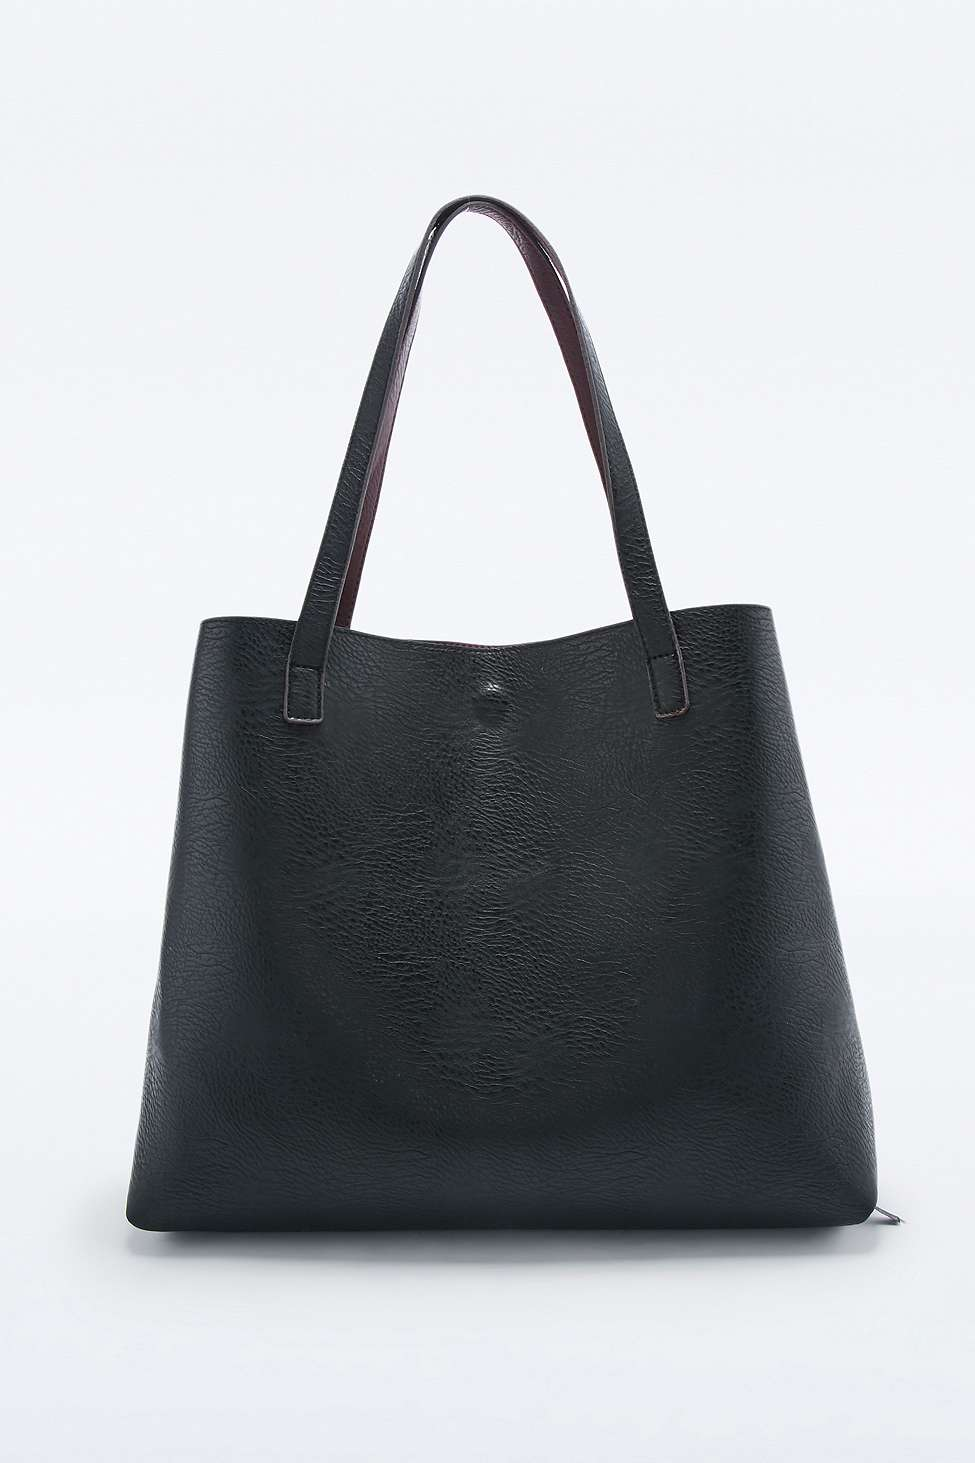 vegan-leather-bag-uo.jpg